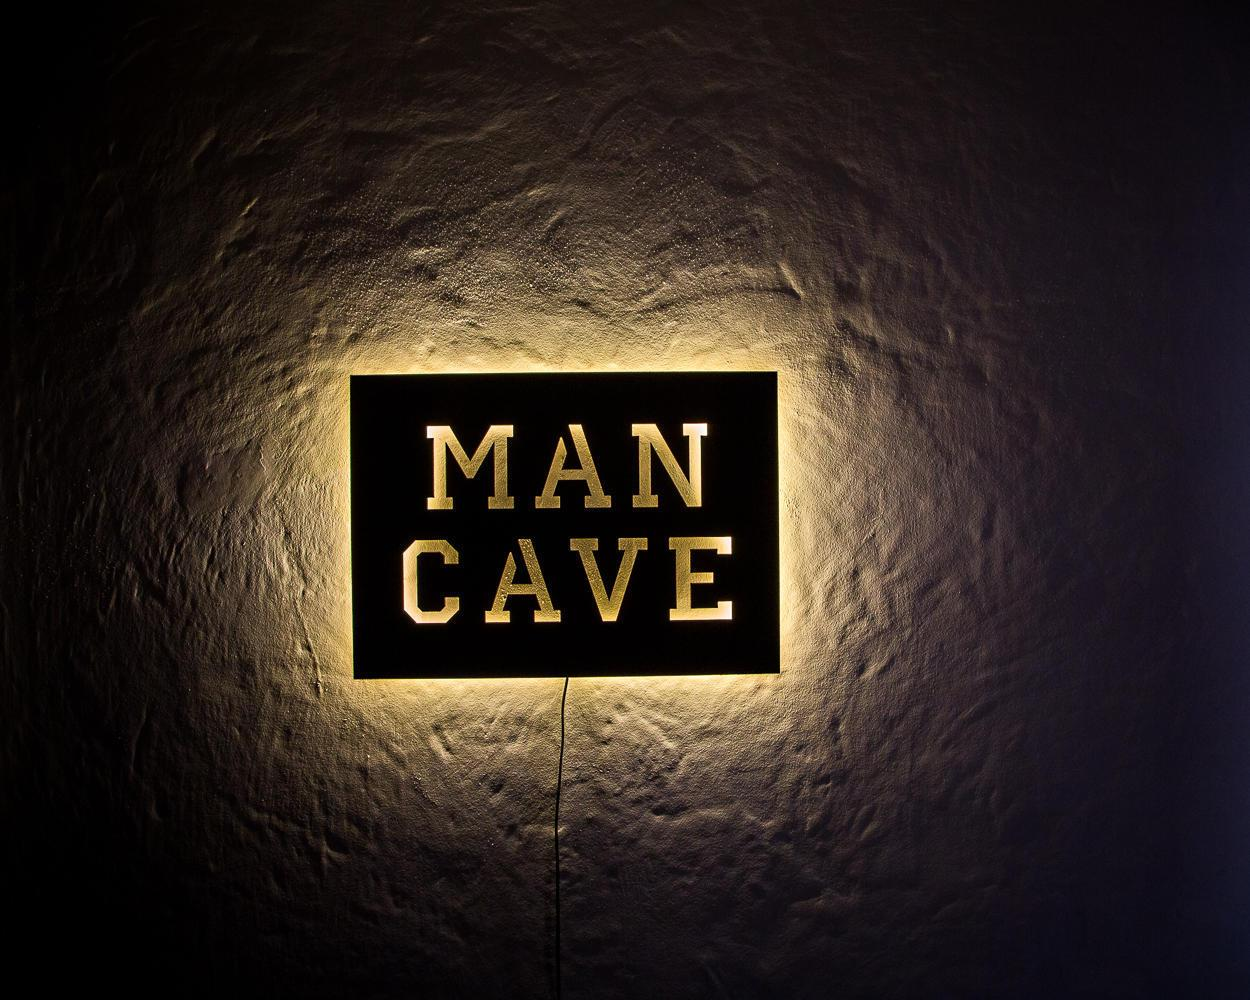 Man Cave Decorative Signs : Man cave led sign wall art handmade from mdf unique